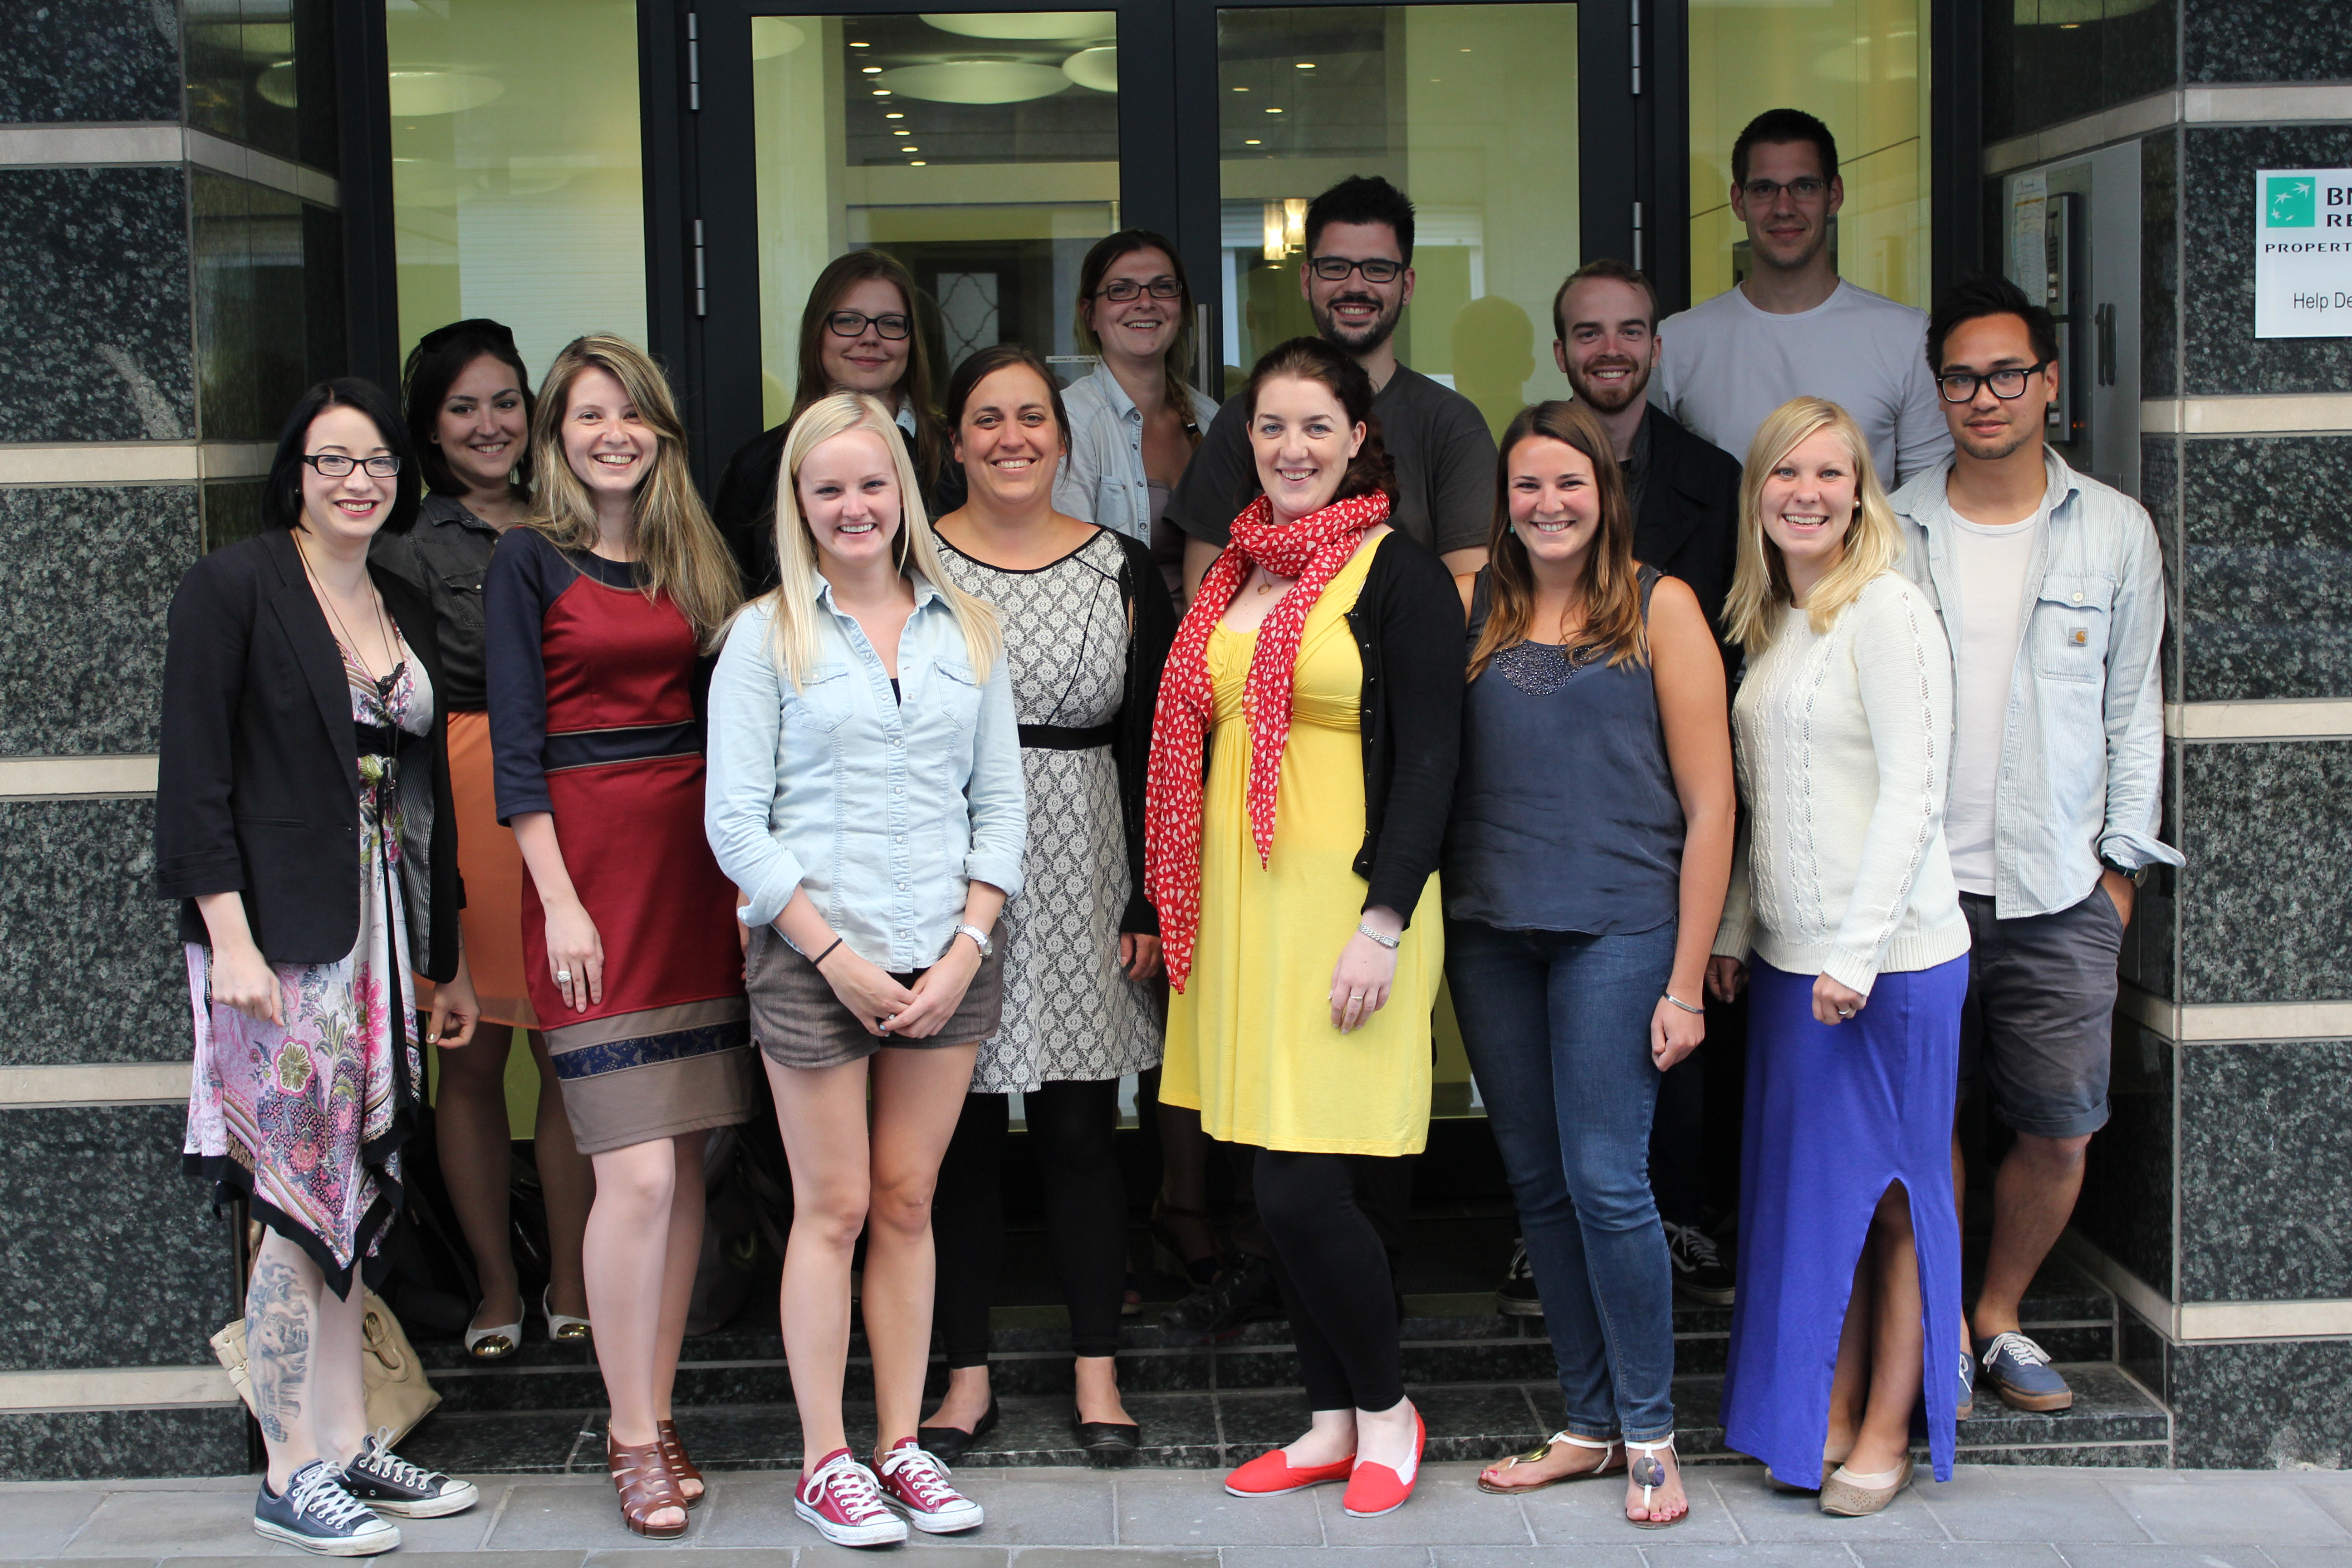 ESU's incoming and outgoing members met in Brussels in June for an official handover of tasks.